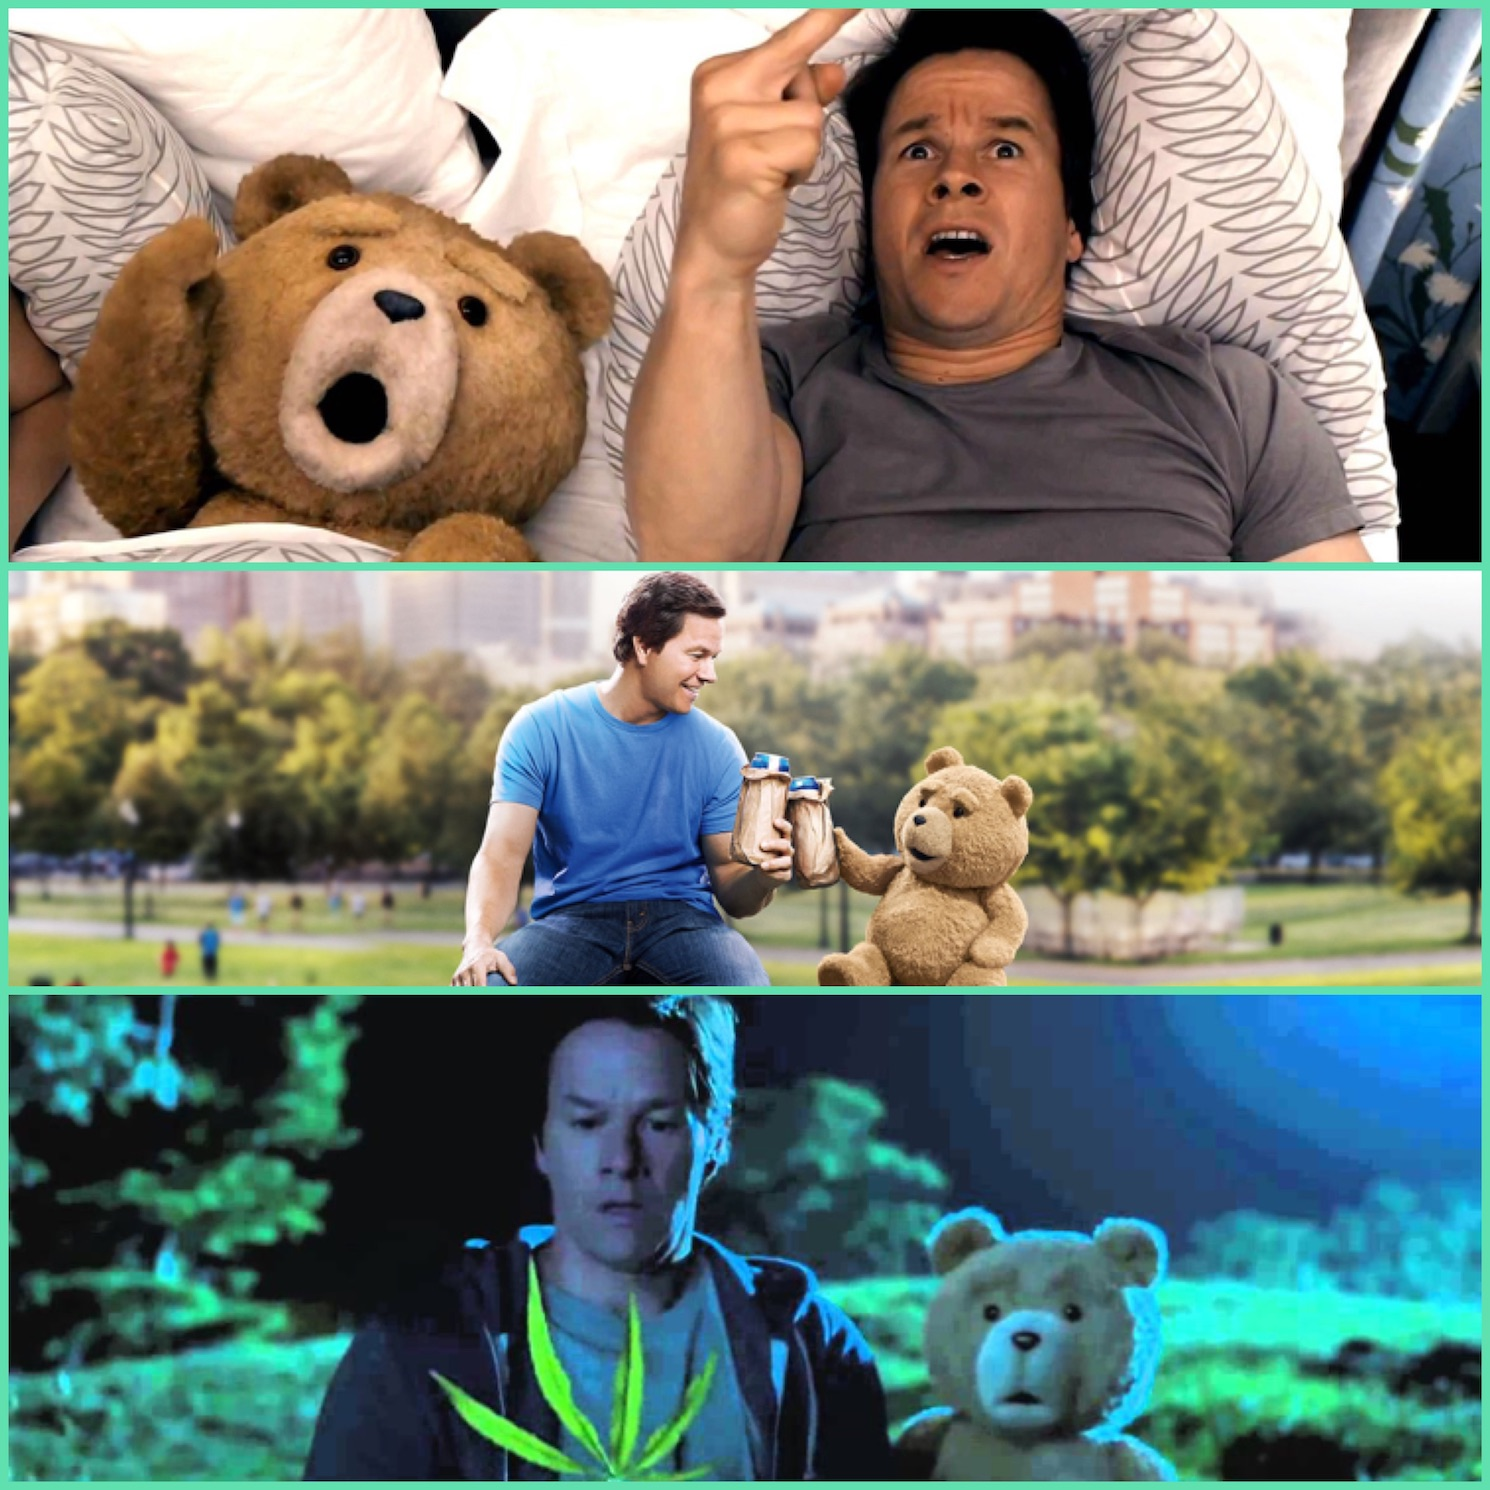 ted-1-2-fillm-considerazioni-riflessioni-insta-thoughts-cinema